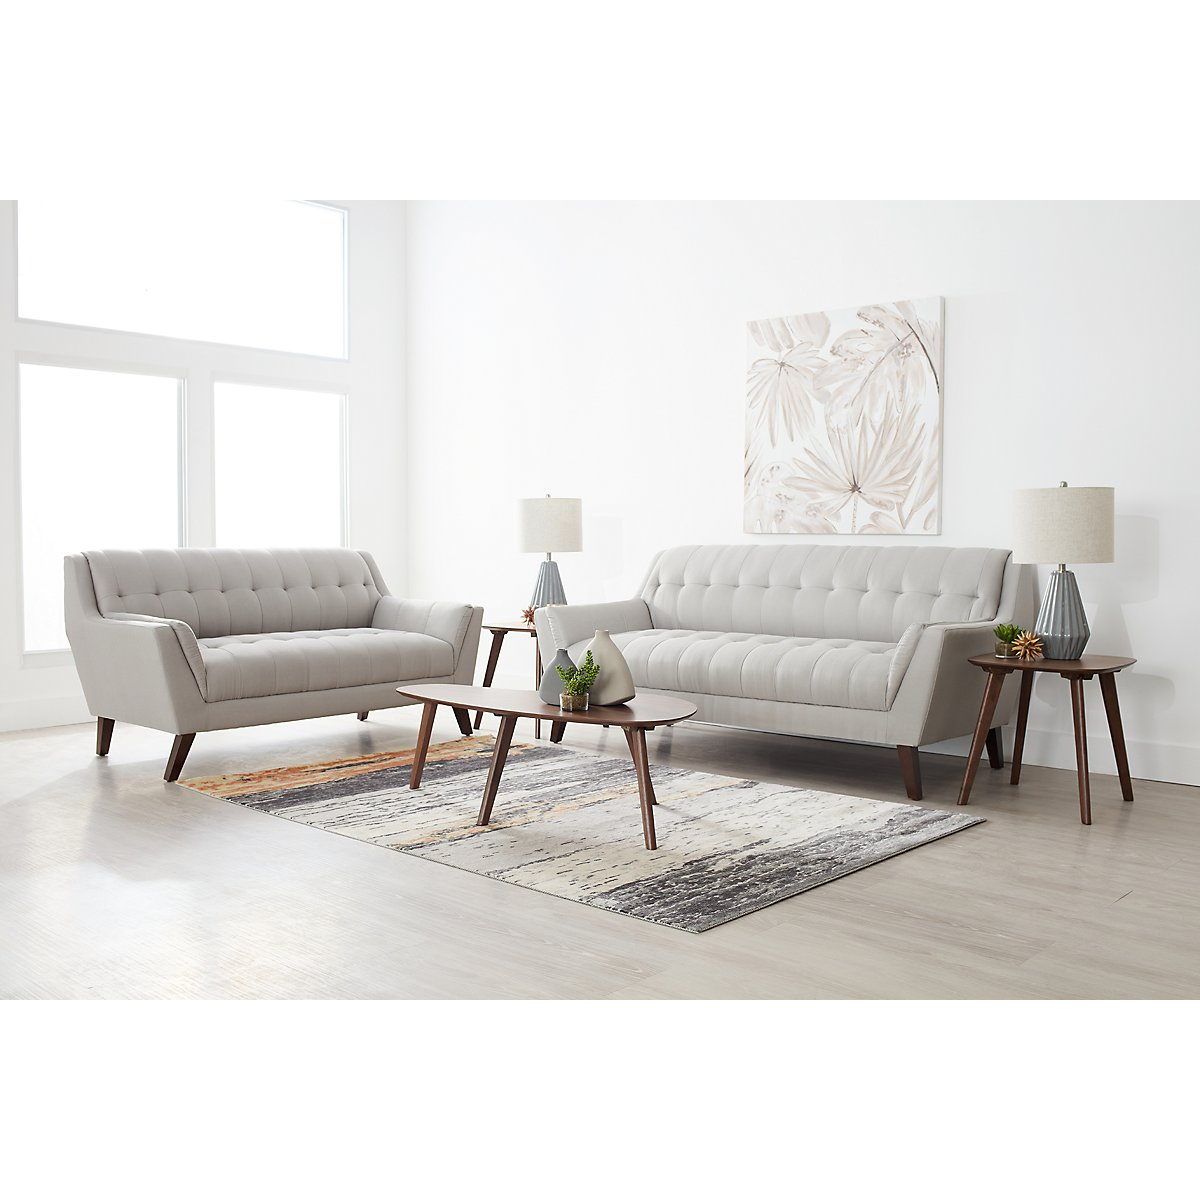 City Furniture: Brentwood Light Beige Fabric 7-Piece Living Room Package